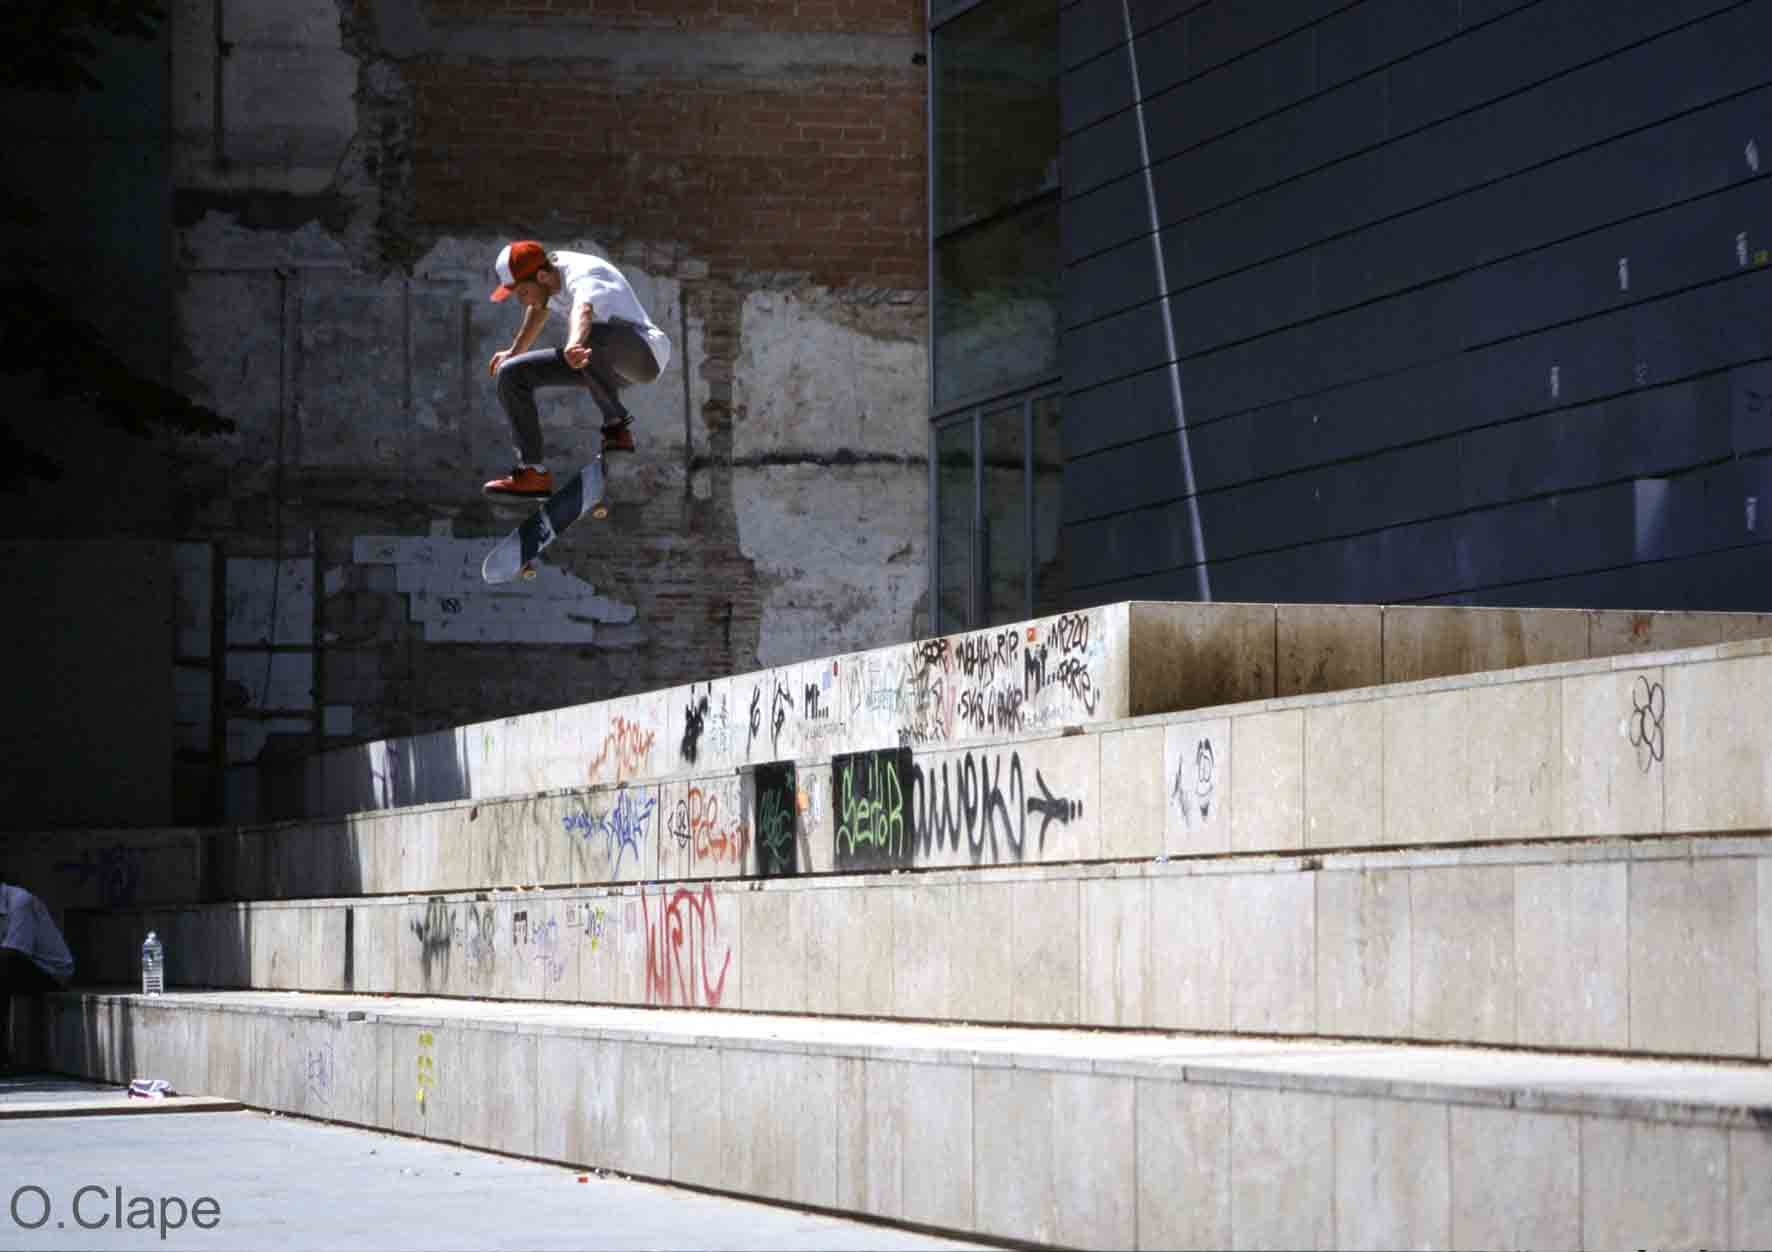 Top 6 Skate Spots to Skate Before It Gets Shut Down